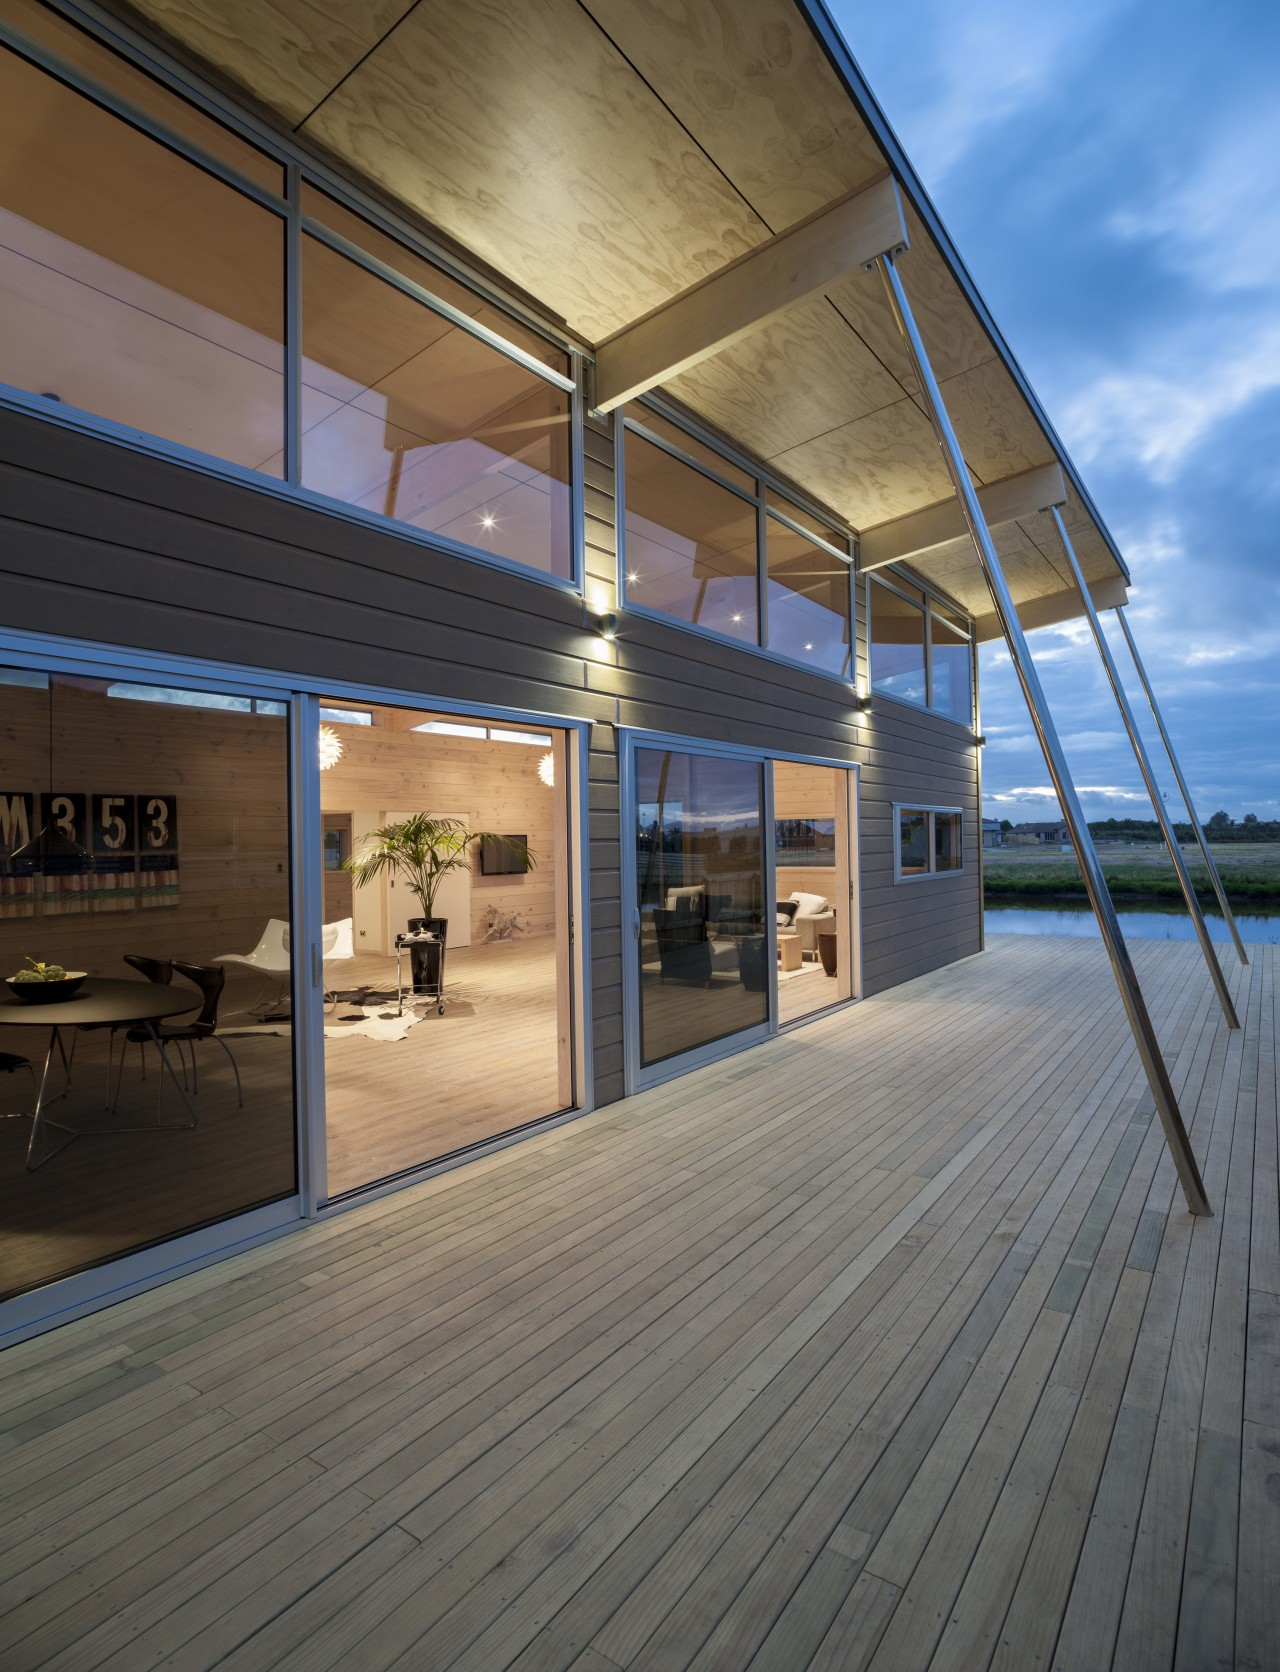 Lockwood show home Tauranga A high raking roof apartment, architecture, building, daylighting, deck, facade, home, house, real estate, siding, window, wood, gray